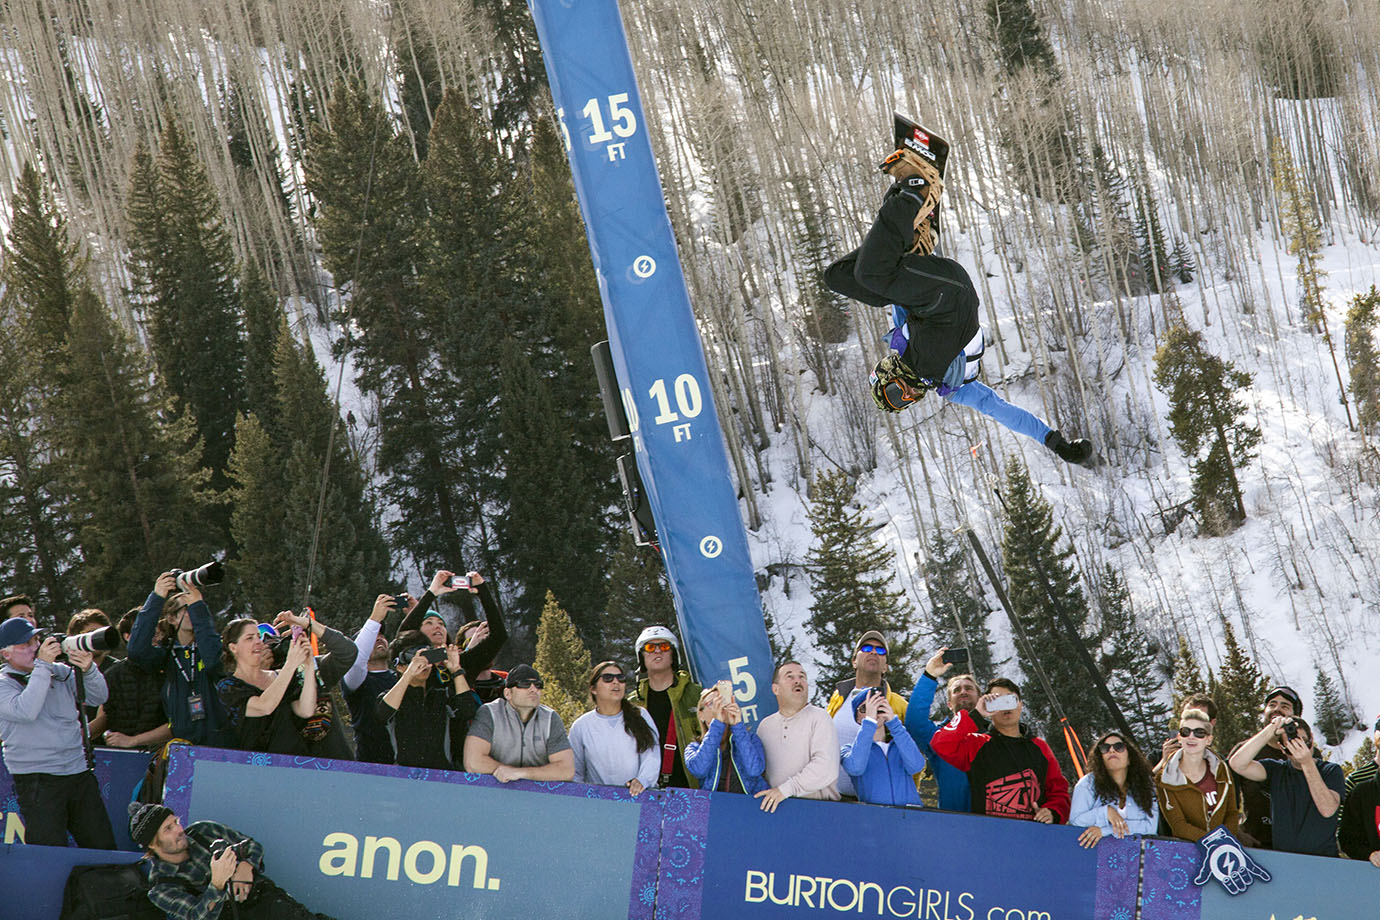 Two-time X Games snowboard SuperPipe champion Danny Davis competing in the finals at the 2016 Burton U.S. Open. Davis finished eighth among a very stacked lineup of riders.